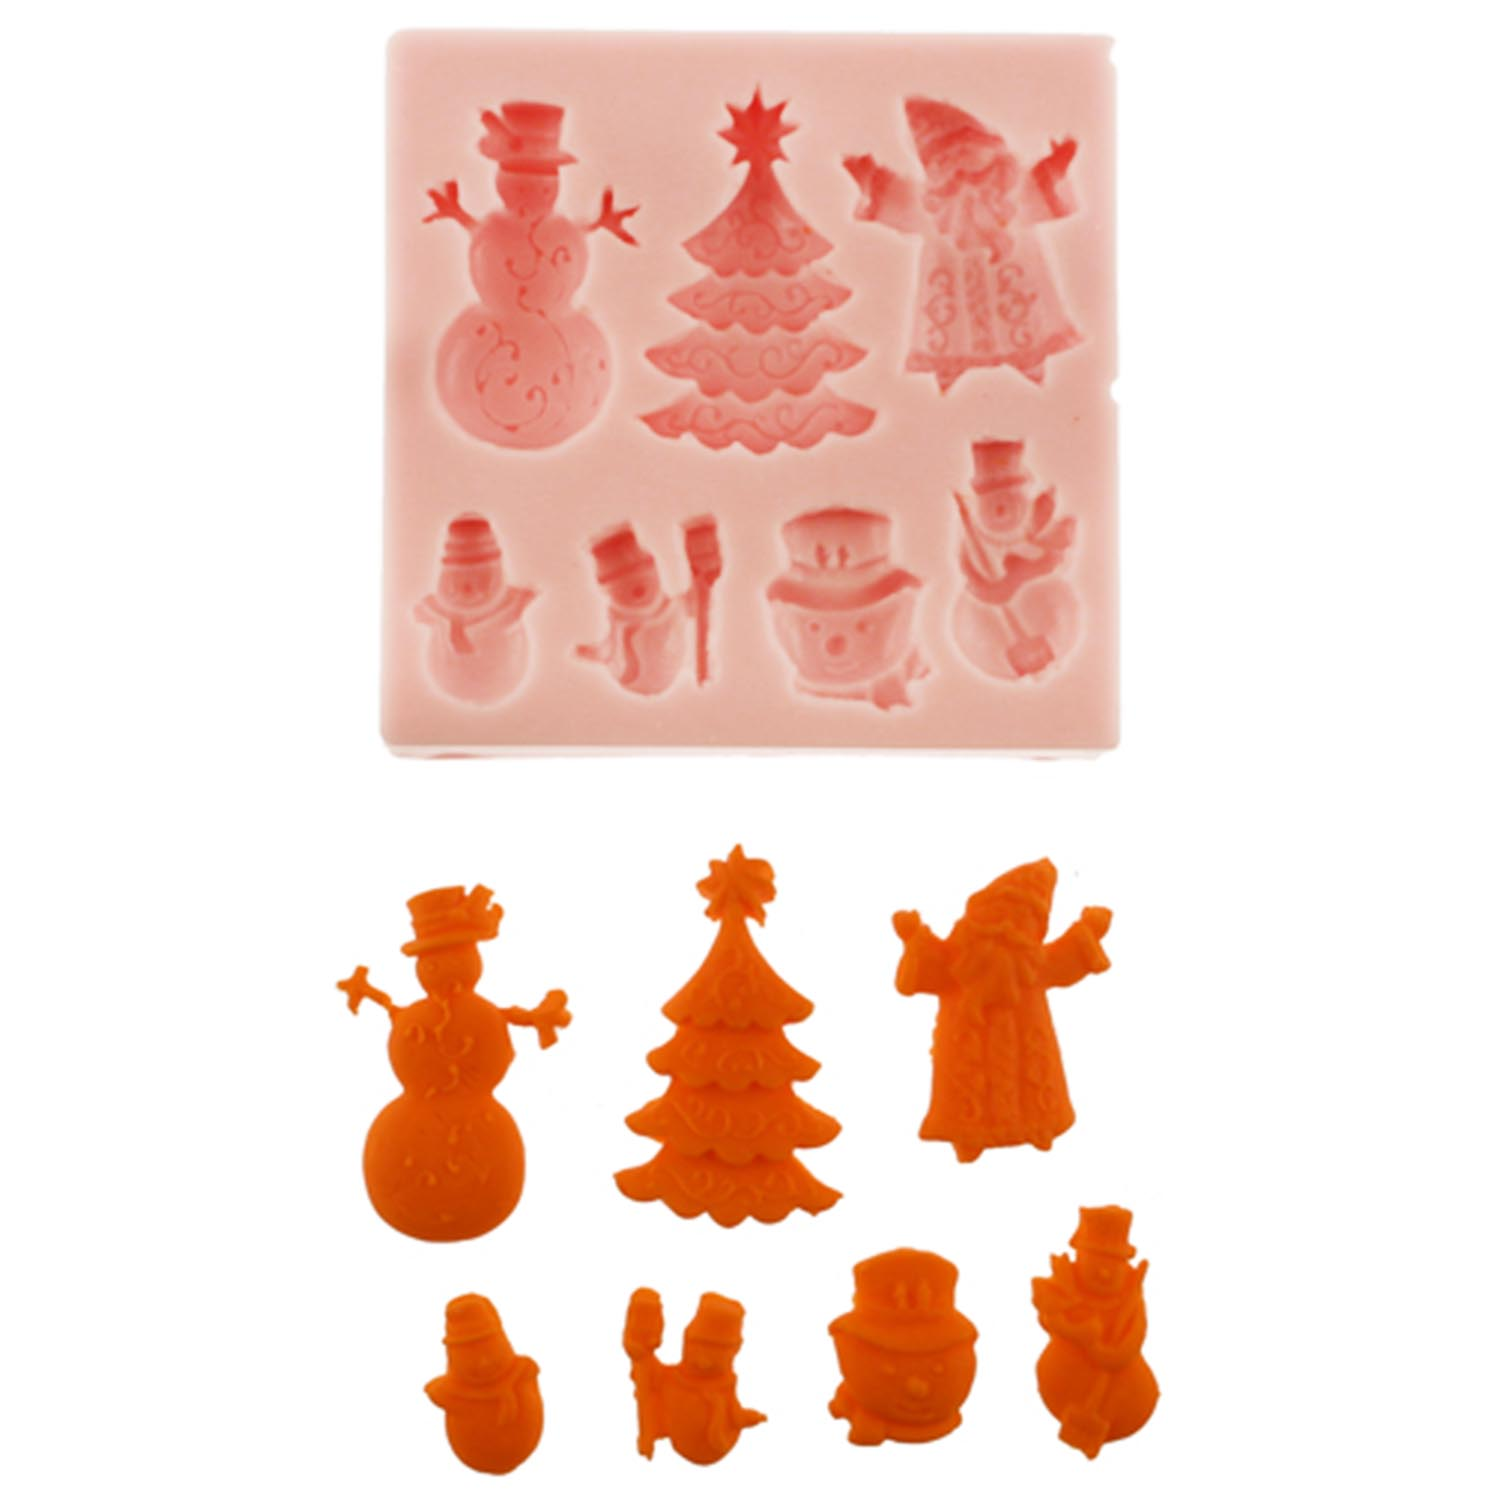 Christmas Assortment Silicone Mold